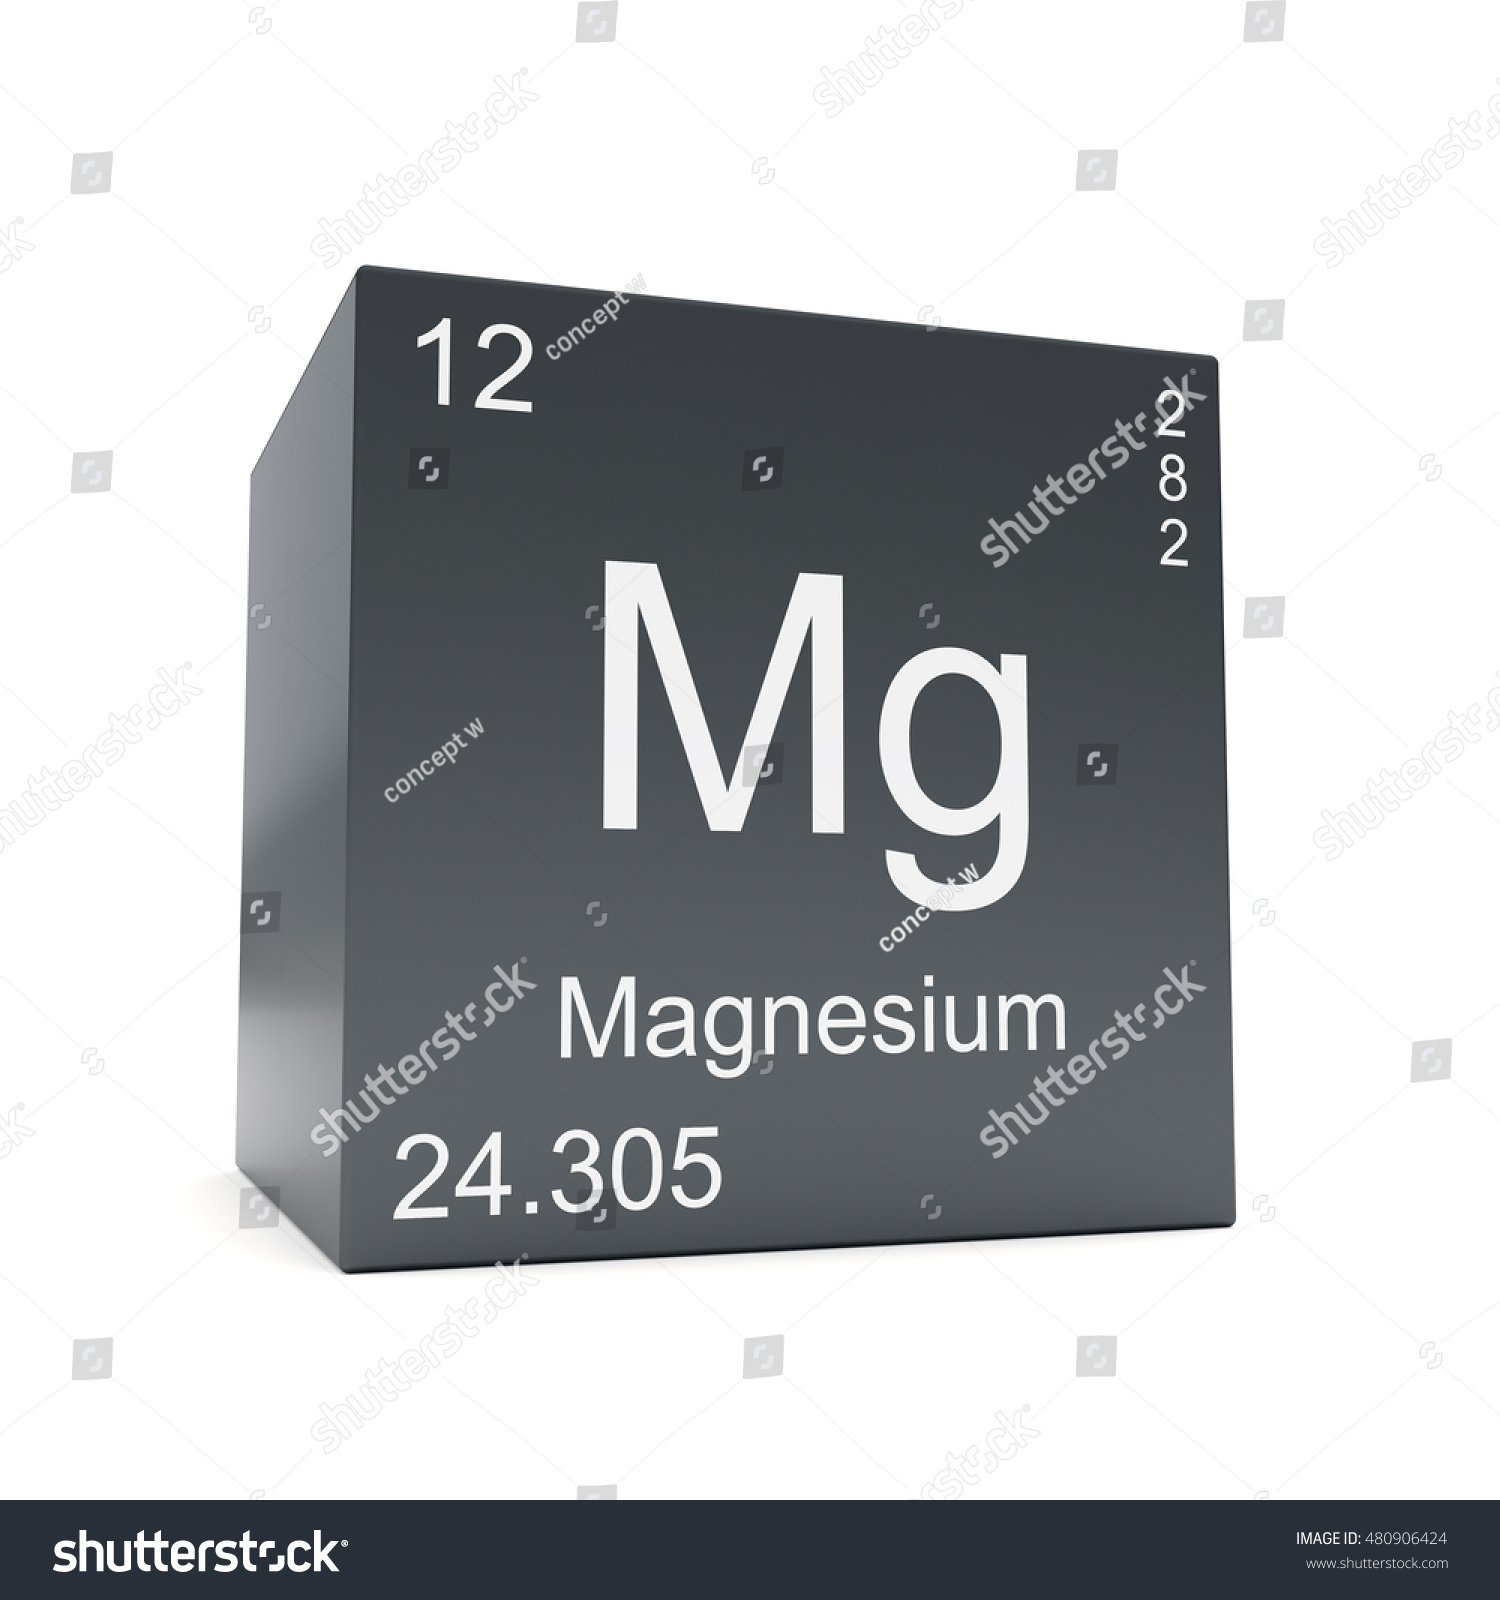 Magnesium symbol periodic table image collections periodic table magnesium on the periodic table gallery periodic table images periodic table symbol for magnesium gallery periodic gamestrikefo Gallery